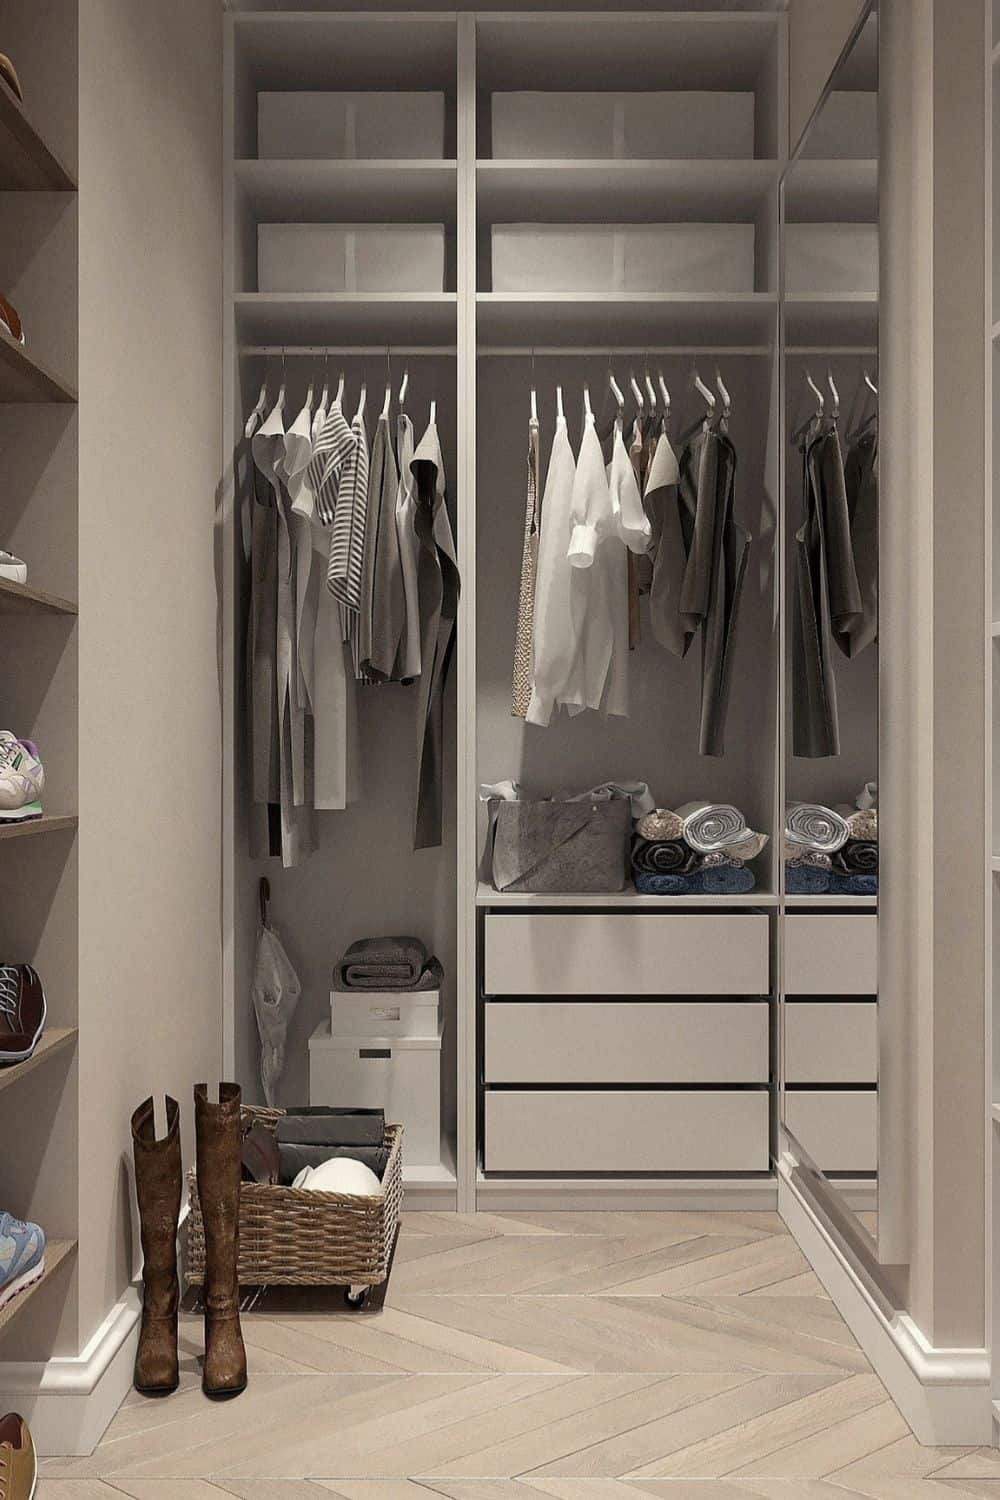 Minimalism in fashion, doesn't fall to the industry; the change starts in your own closet with a minimalist wardrobe. Image by press 👍 and ⭐ from Pixabay #minimalistwardrobe #mensminimalistwardrobe #womensminimalistwardrobe #creatingaminimalistwardrobe #sustainablejungle